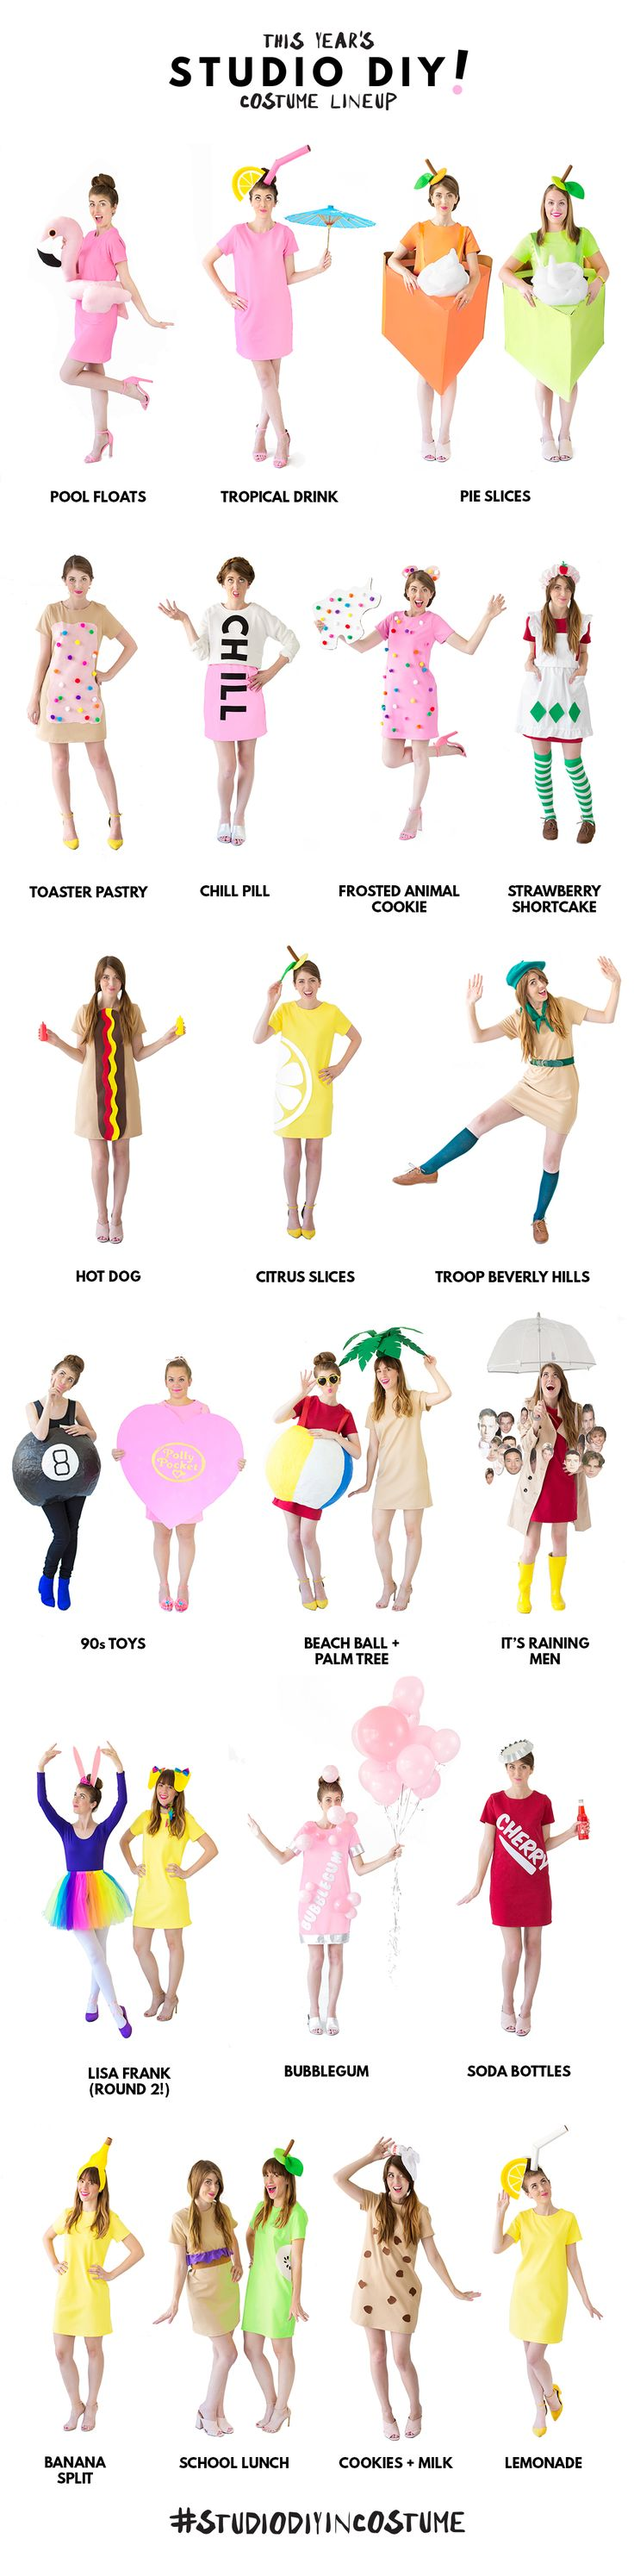 studio-diy-2016-costume-line-up.jpg 1,200×4,874 pixeles